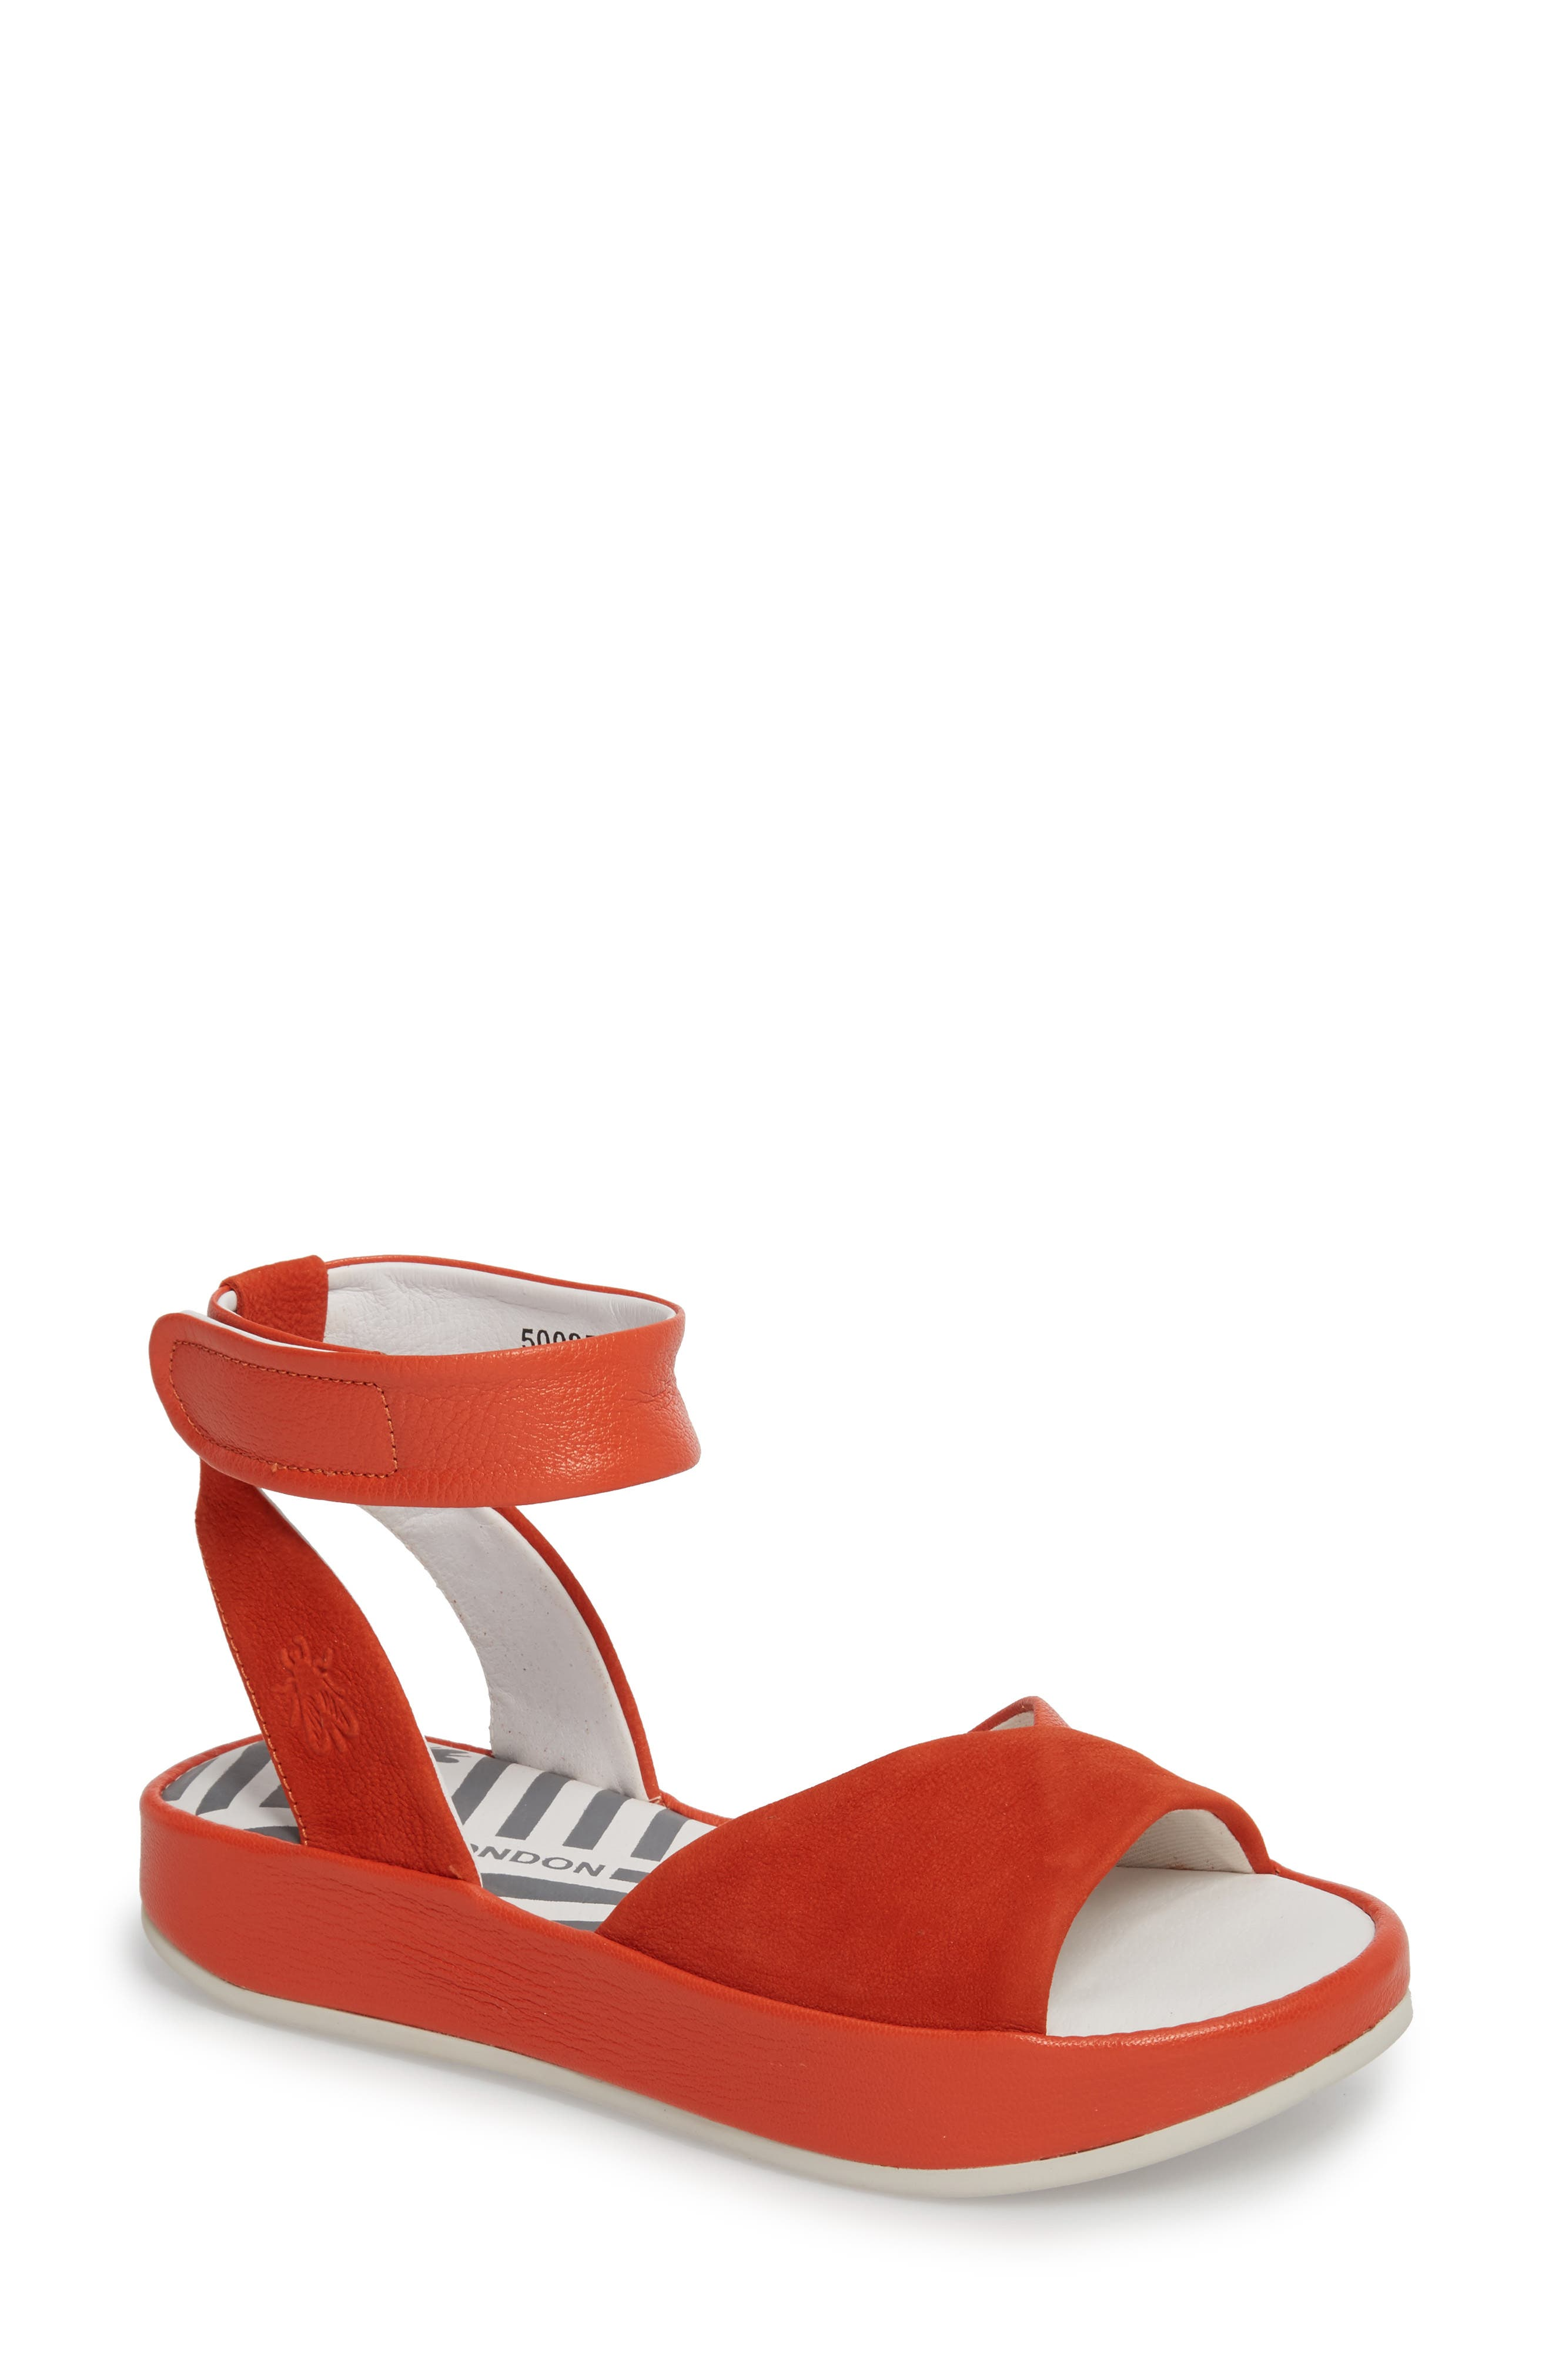 Fly London Bibb Sandal - Orange